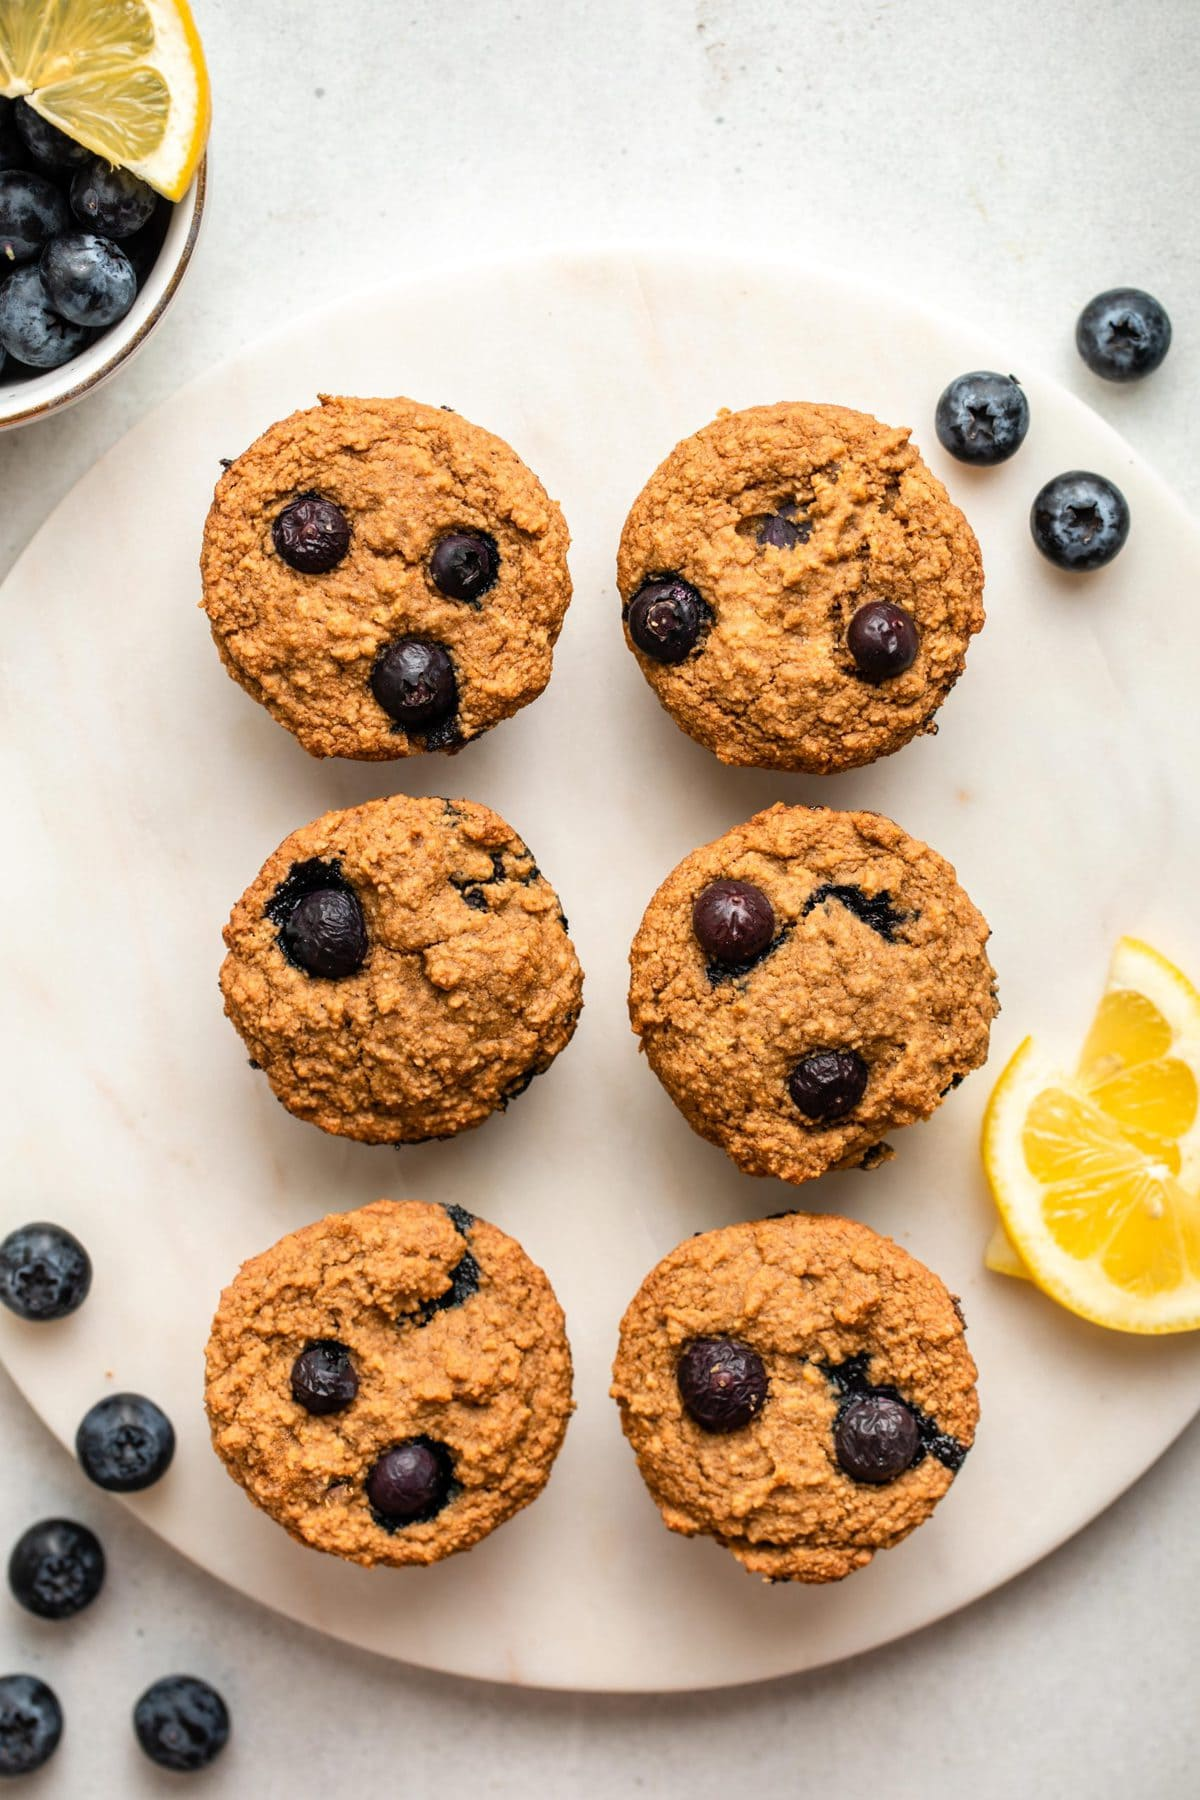 six lemon blueberry muffins on white serving tray with lemon slices and fresh blueberries